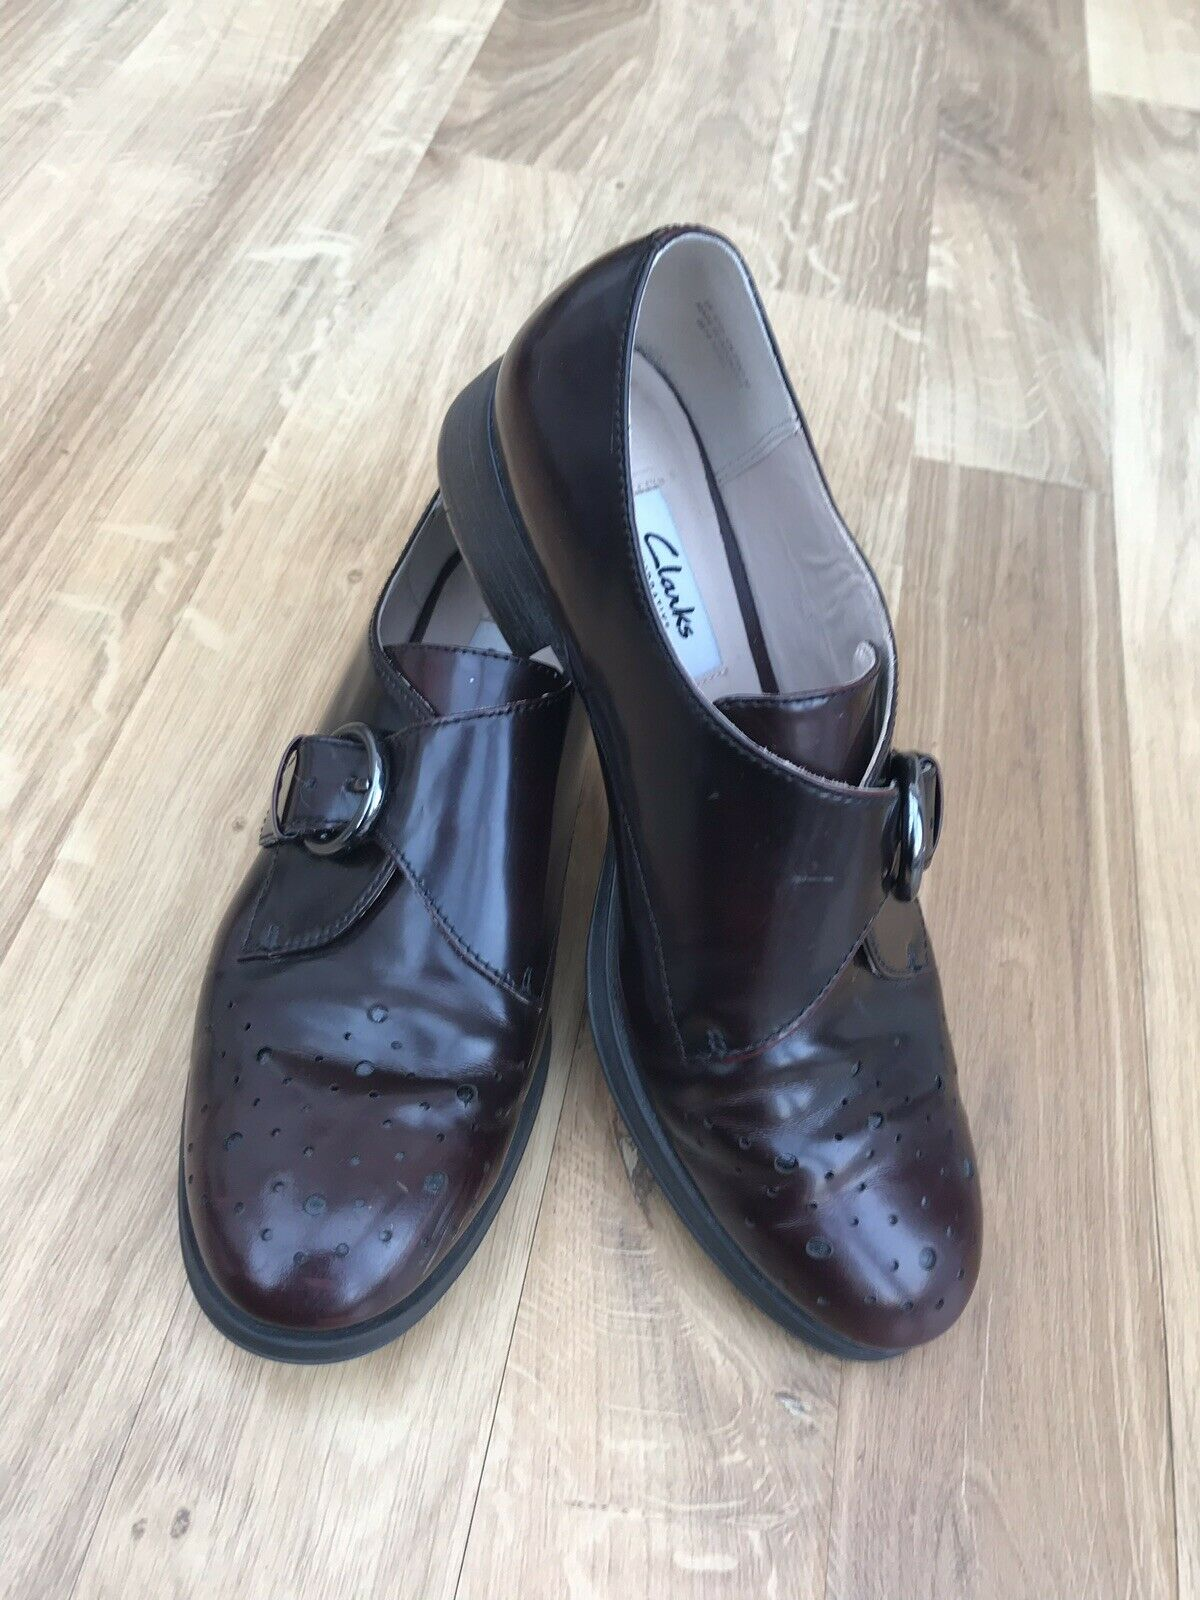 CLARKS NARRATIVE Buckle Brogues Oxblood Red Leather Flat shoes UK 4.5D